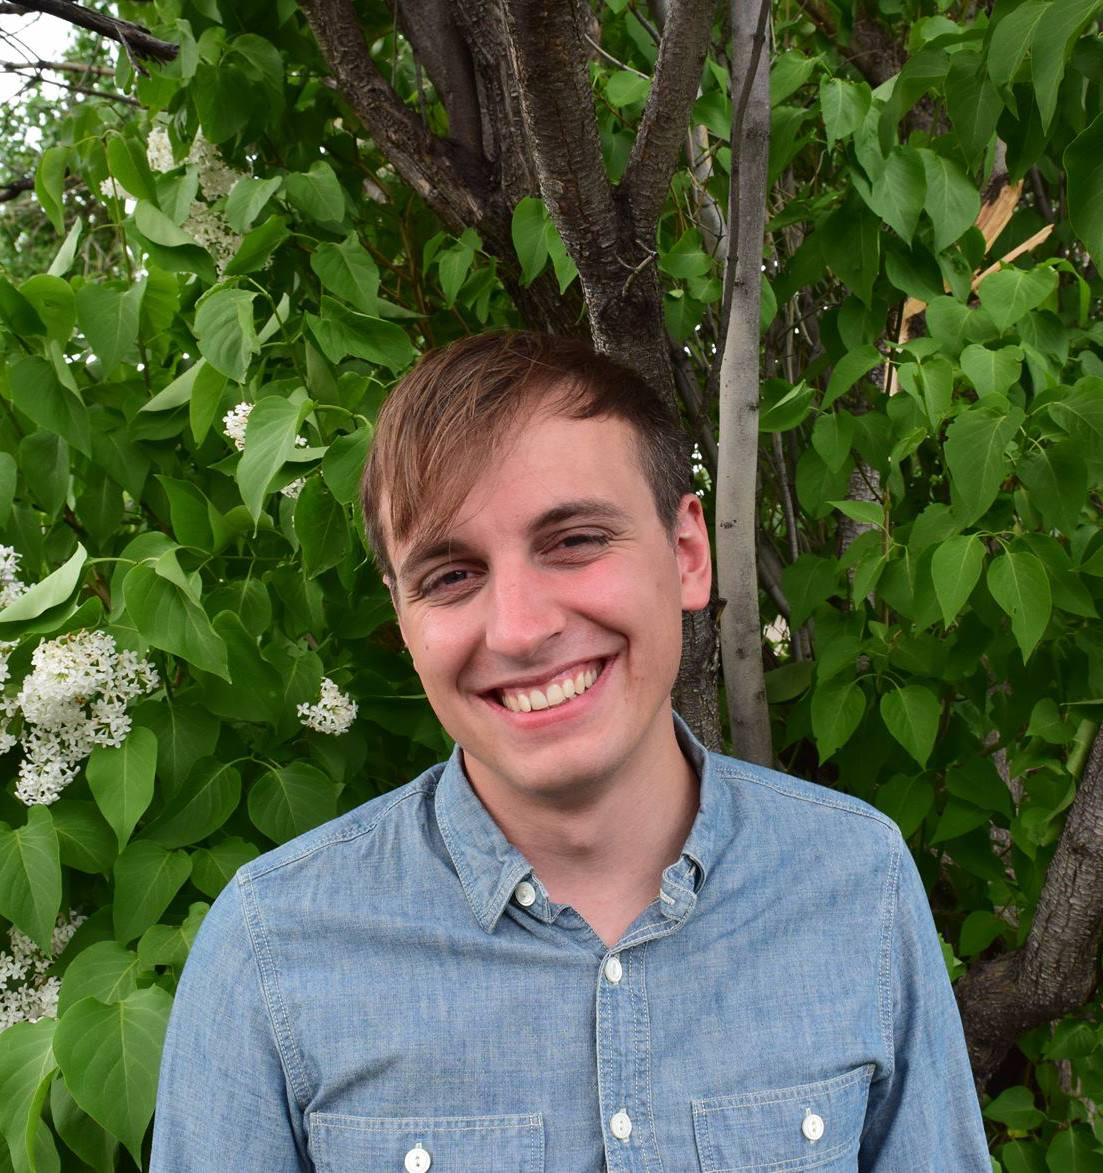 Alec Osthoff - Alec Osthoff grew up in Ely, Minnesota. He received his MFA from the University of Wyoming.His work has appeared in Midwestern Gothic, Atticus Review, Western Confluence, and as winner of the Blue Mesa Review Fiction Contest.He can be found on twitter at @AlecOsthoff.